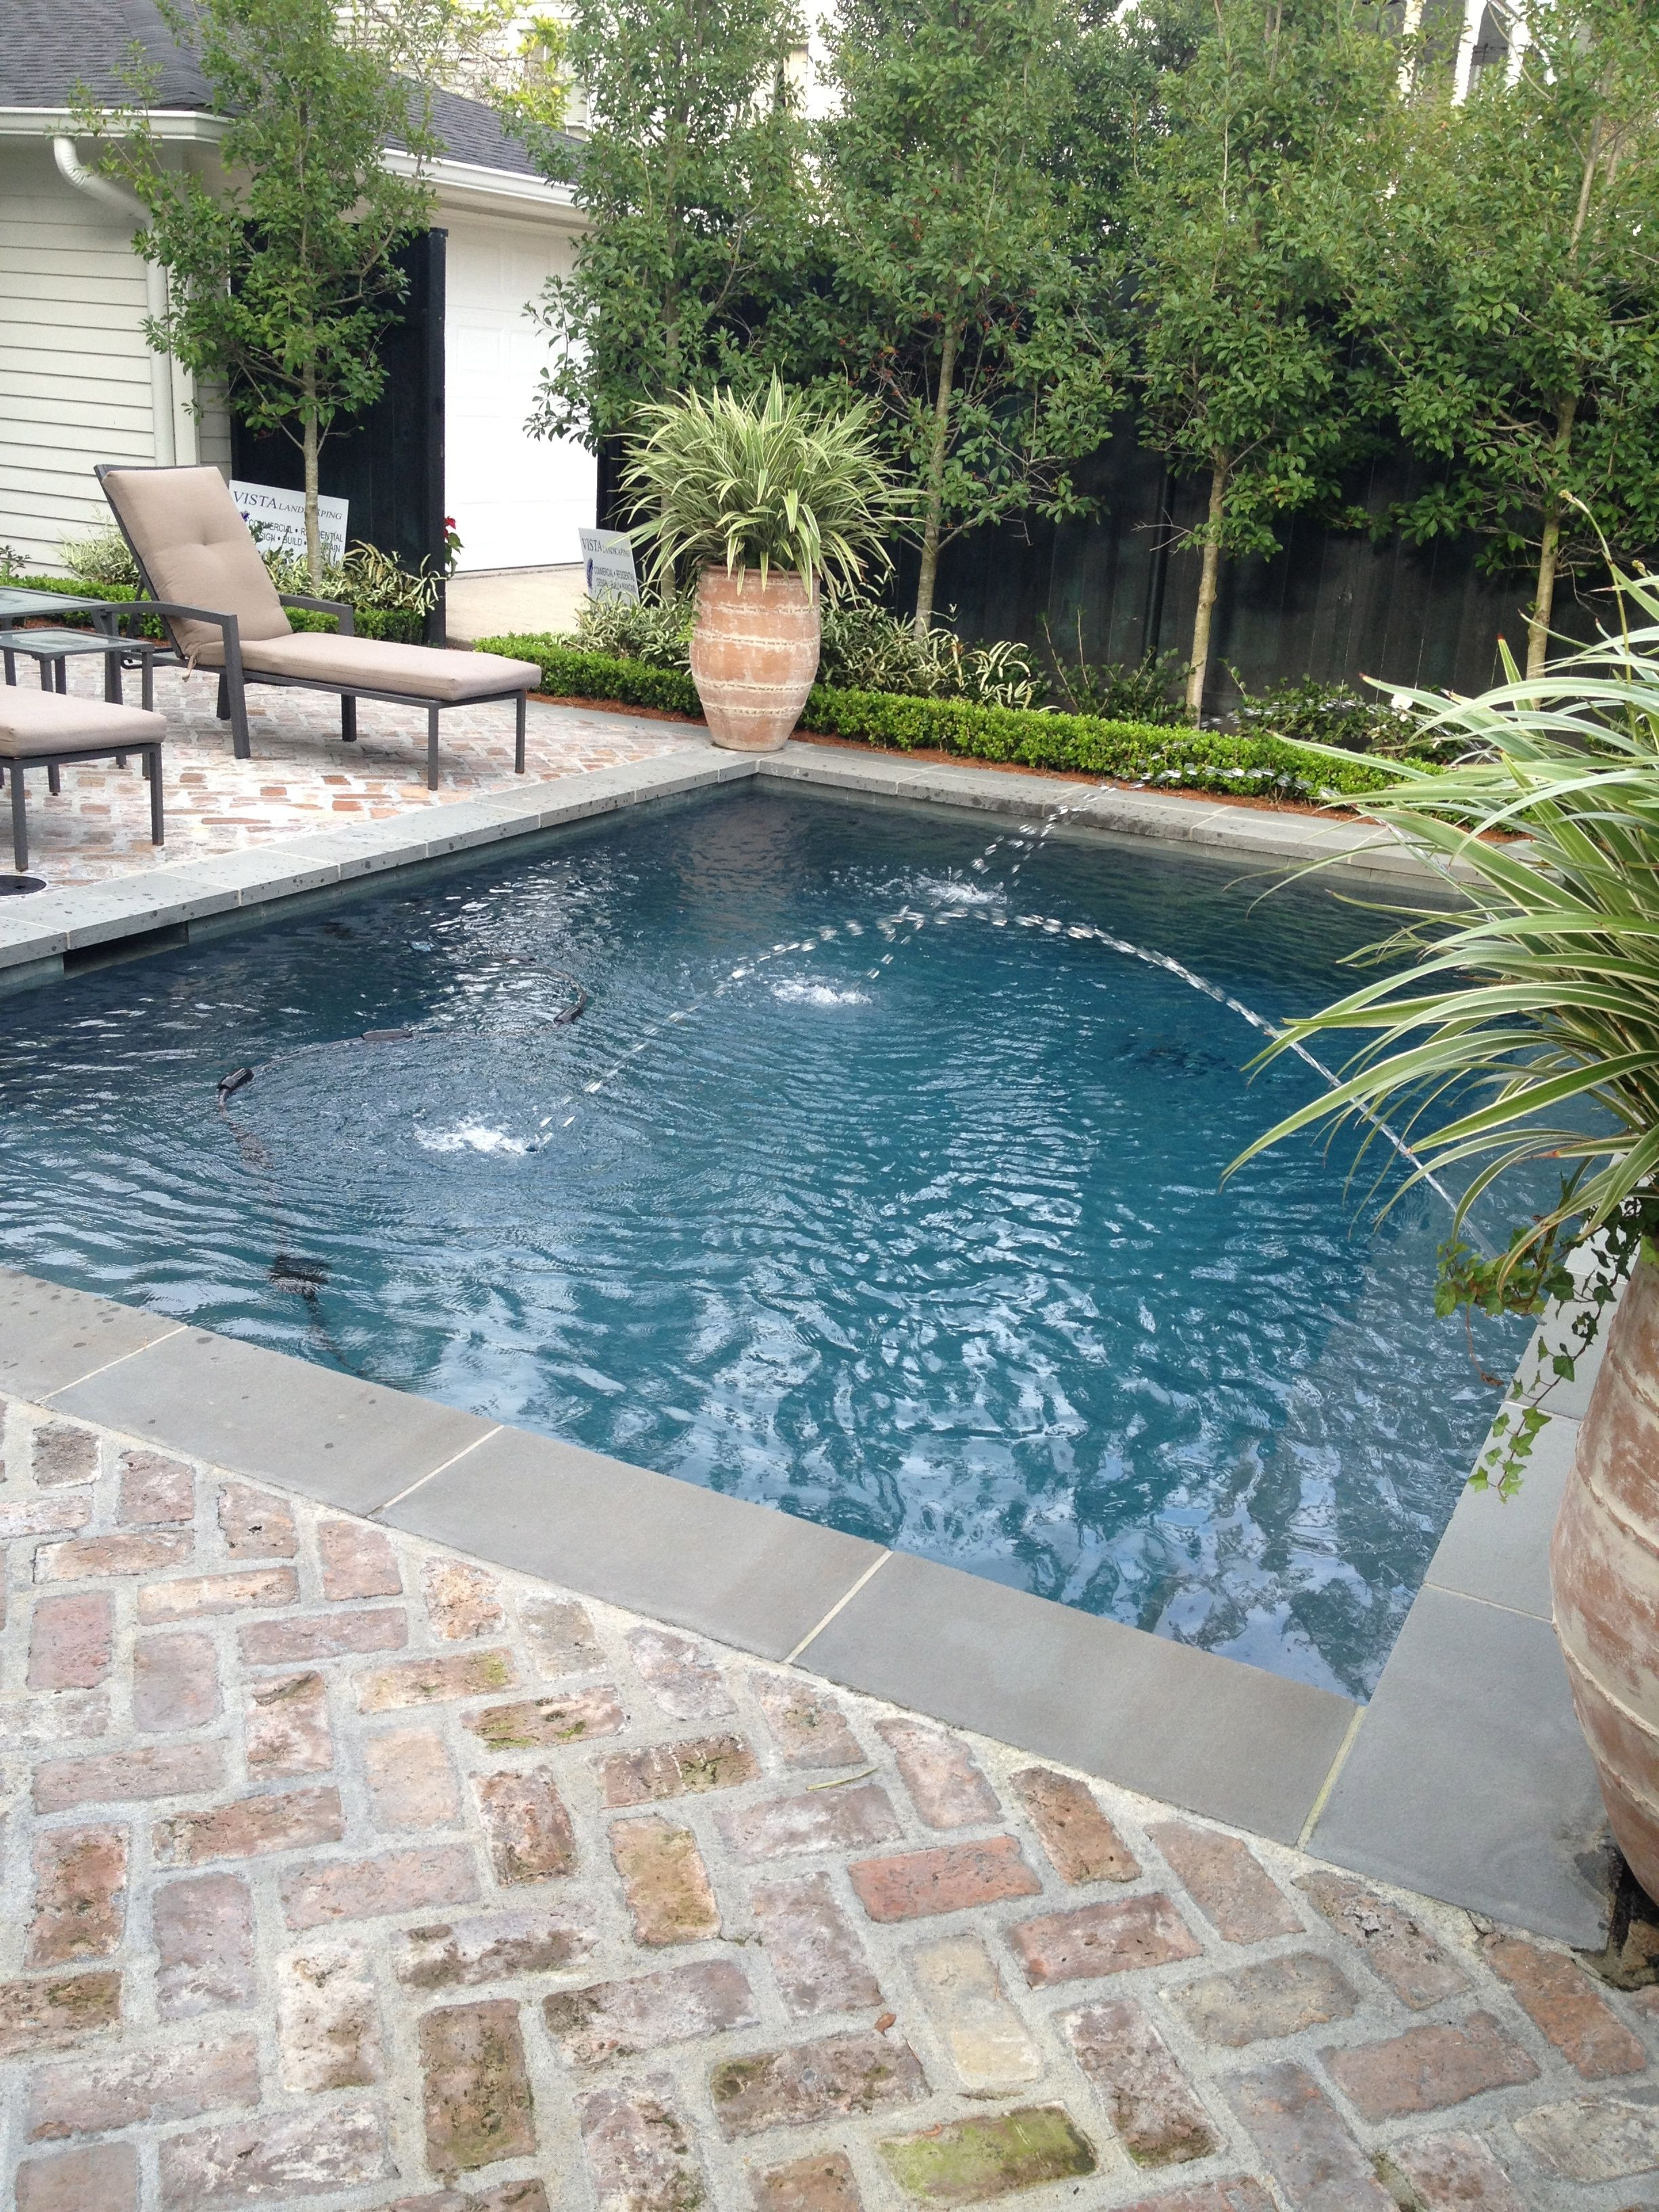 Pool And Brick Pattern